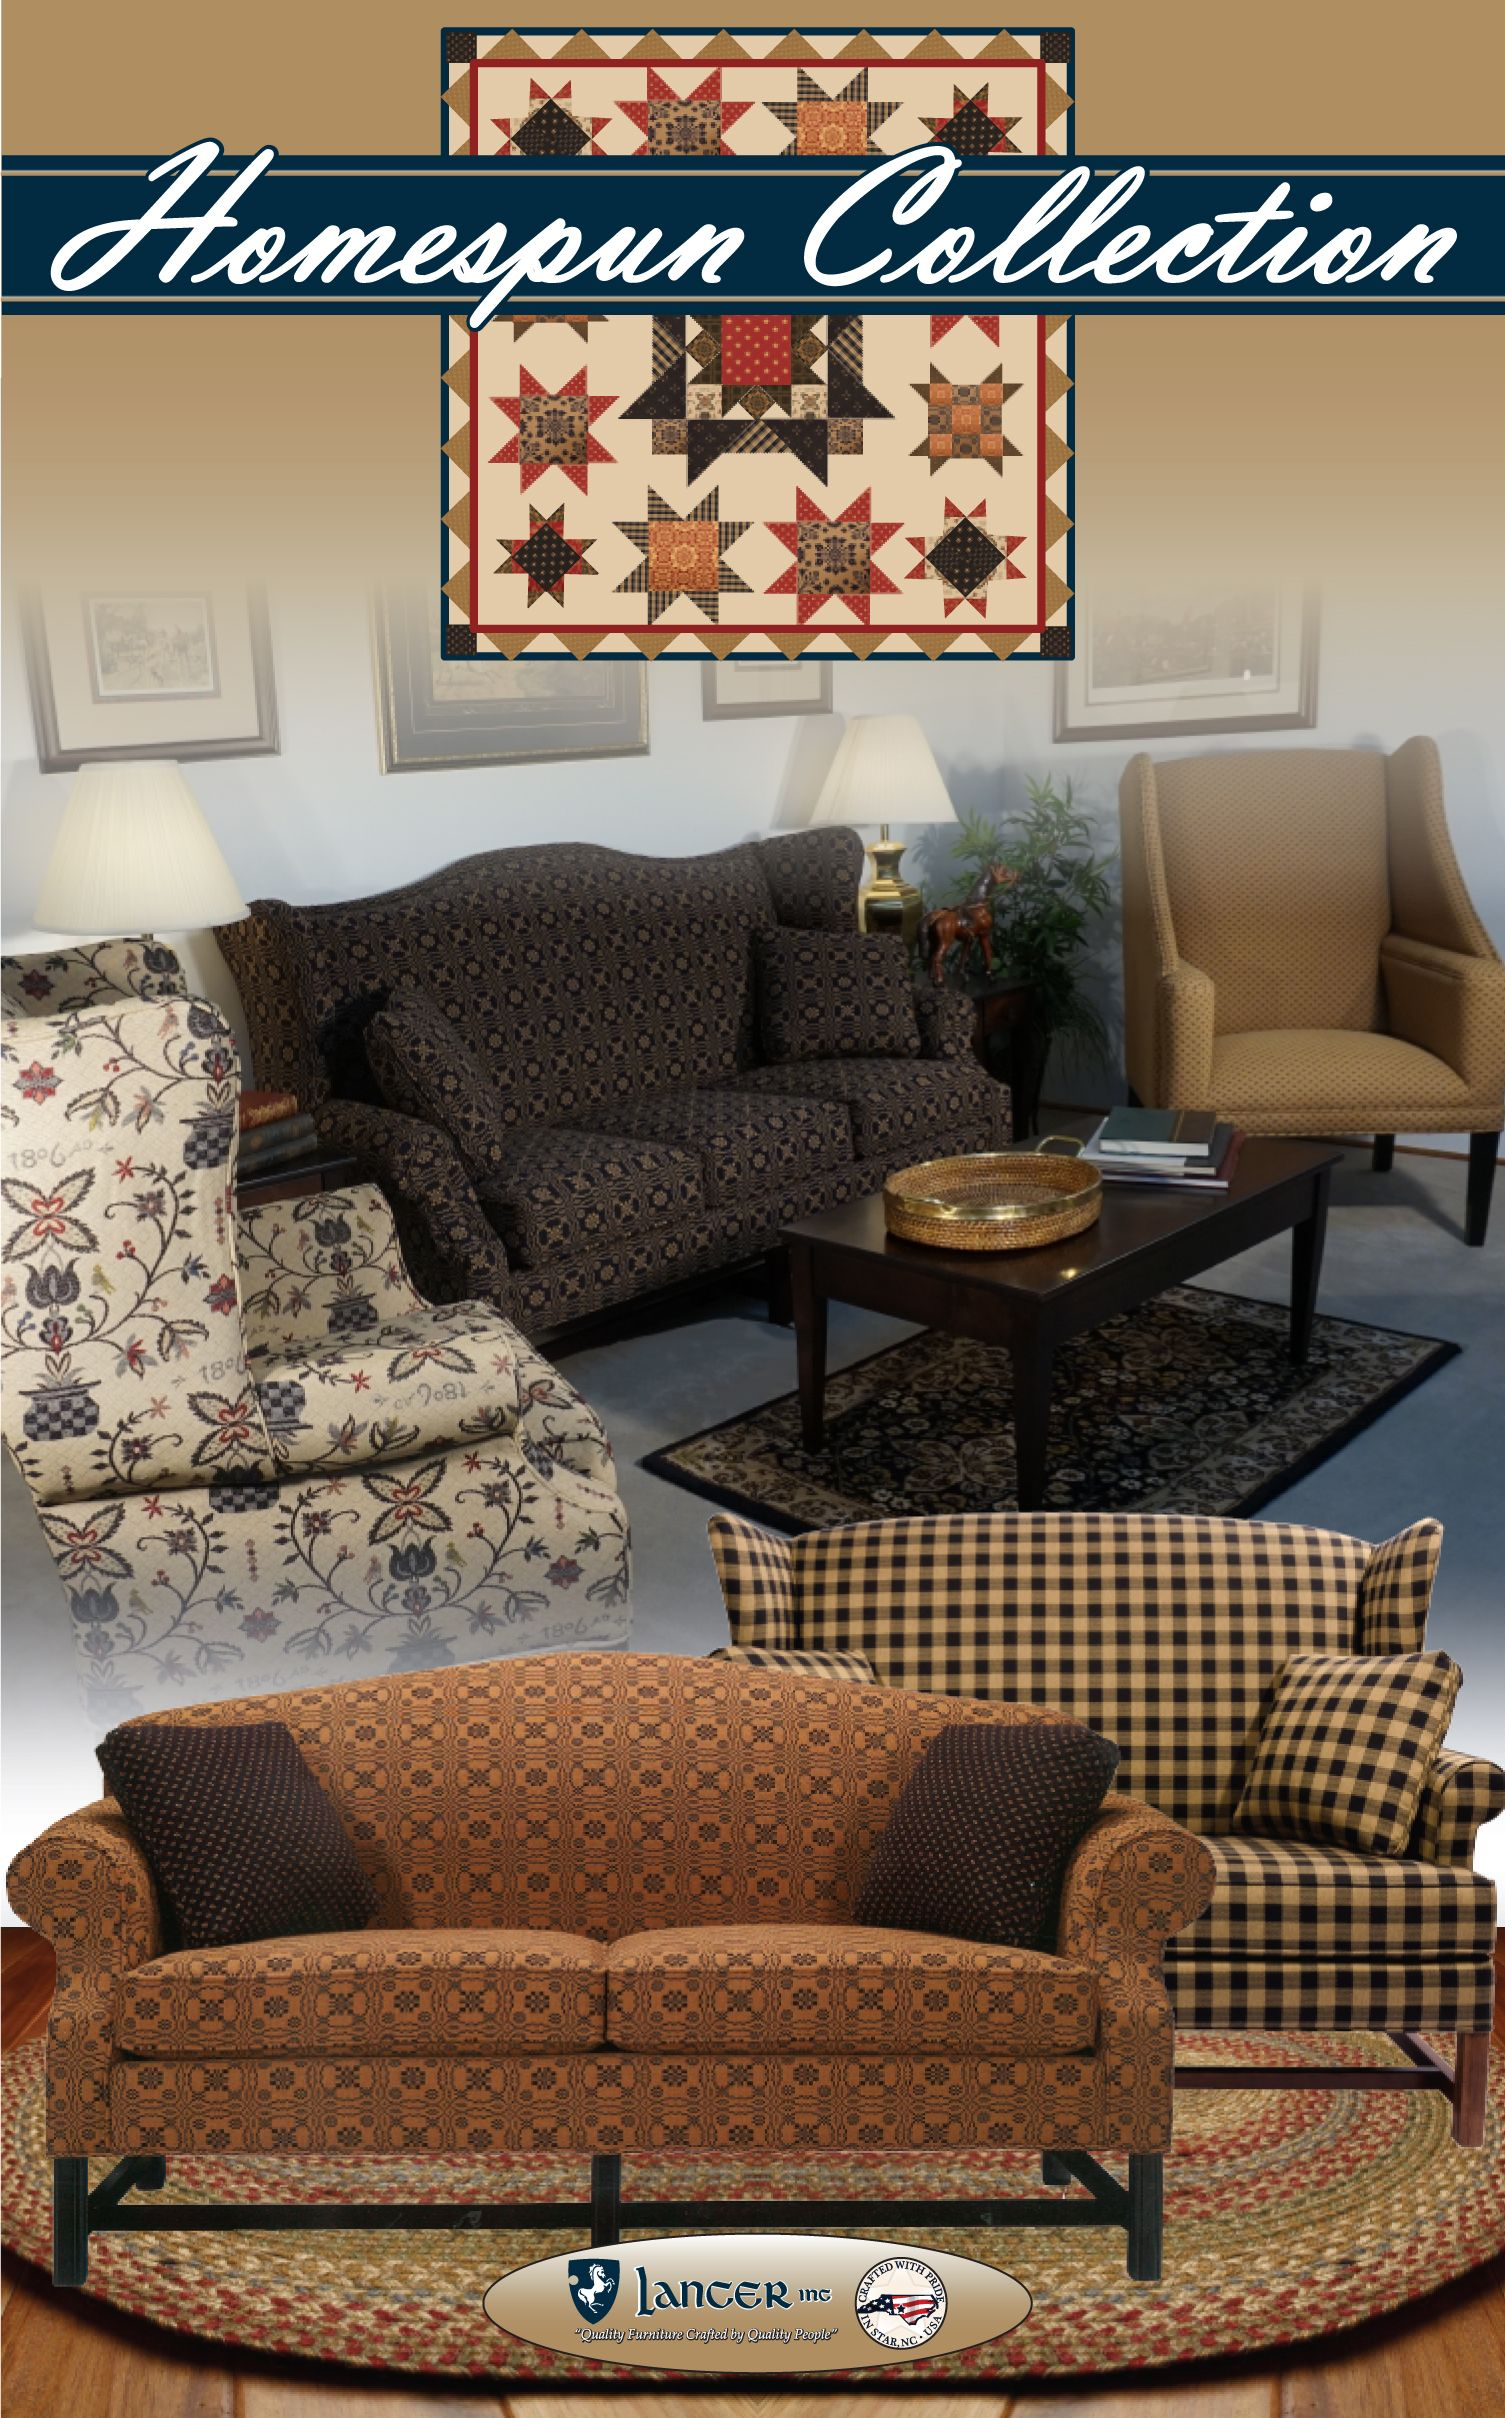 country primitive sofa tables beds at raymour and flanigan pin by lancer furniture on homespun collection pinterest